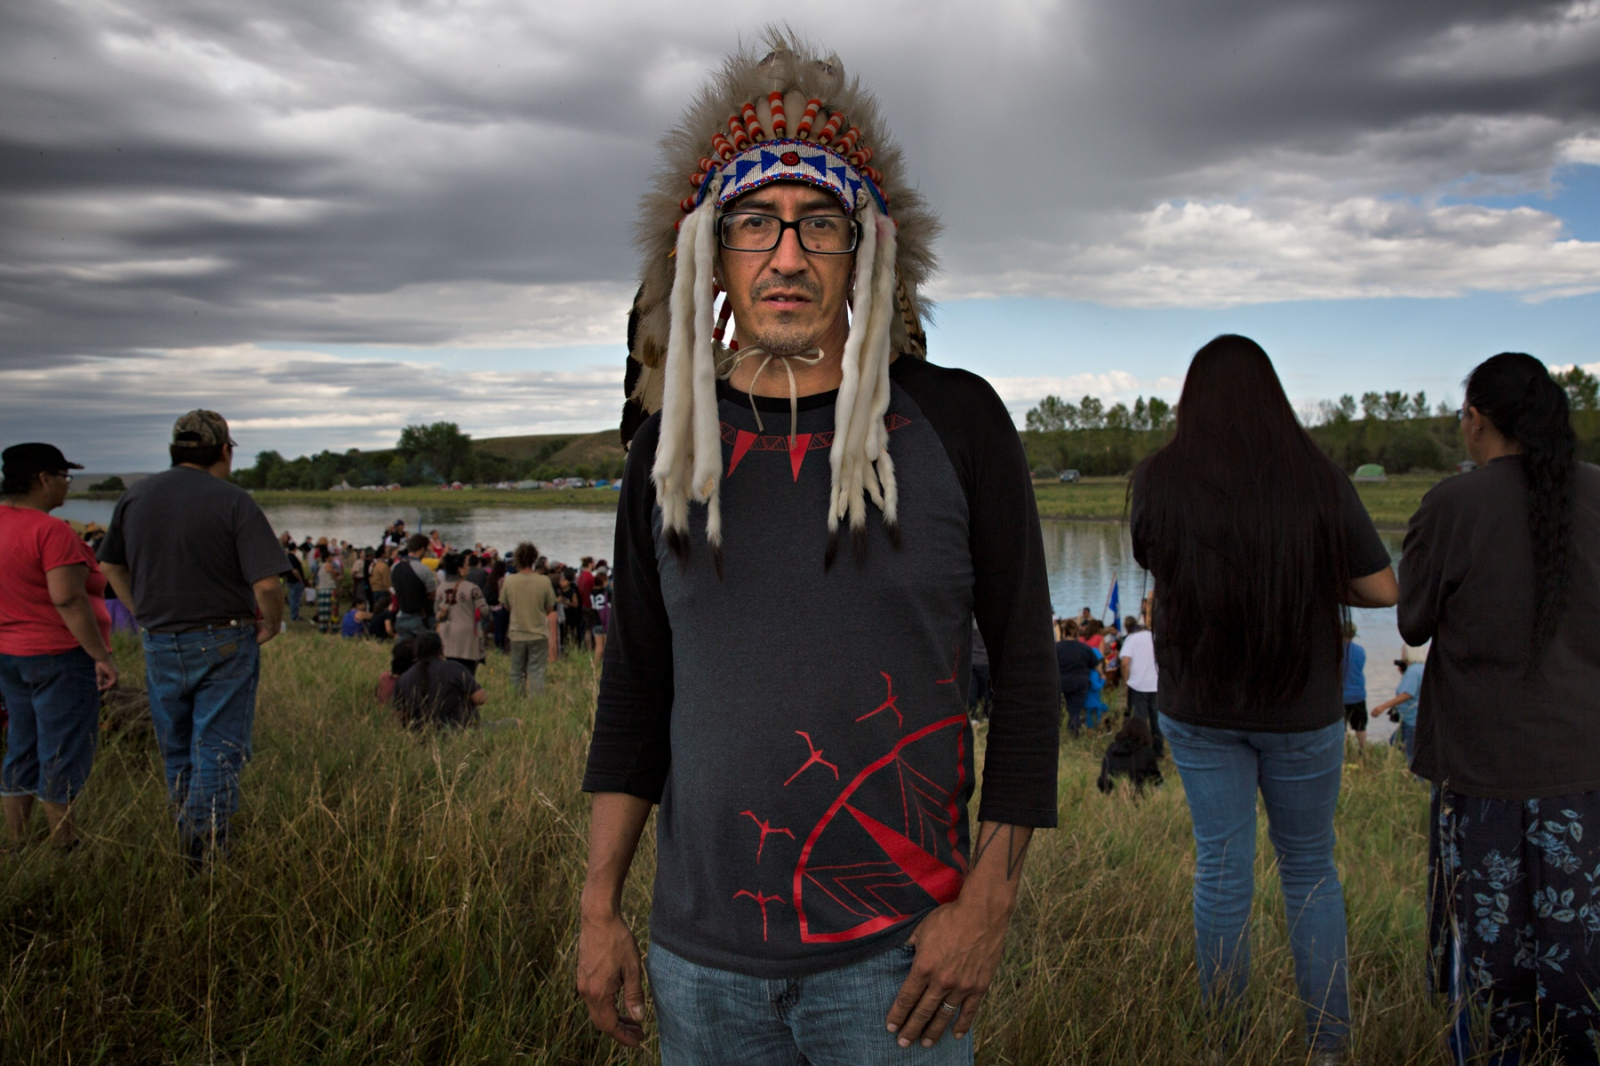 September 8, 2016- Cannon Ball, North Dakota, United States:Catcher Cuts the Rope, from Hays, Montana, wore his war bonnet given to him after he returned from Iraq War where he was wounded in the Battle of Fallujah.